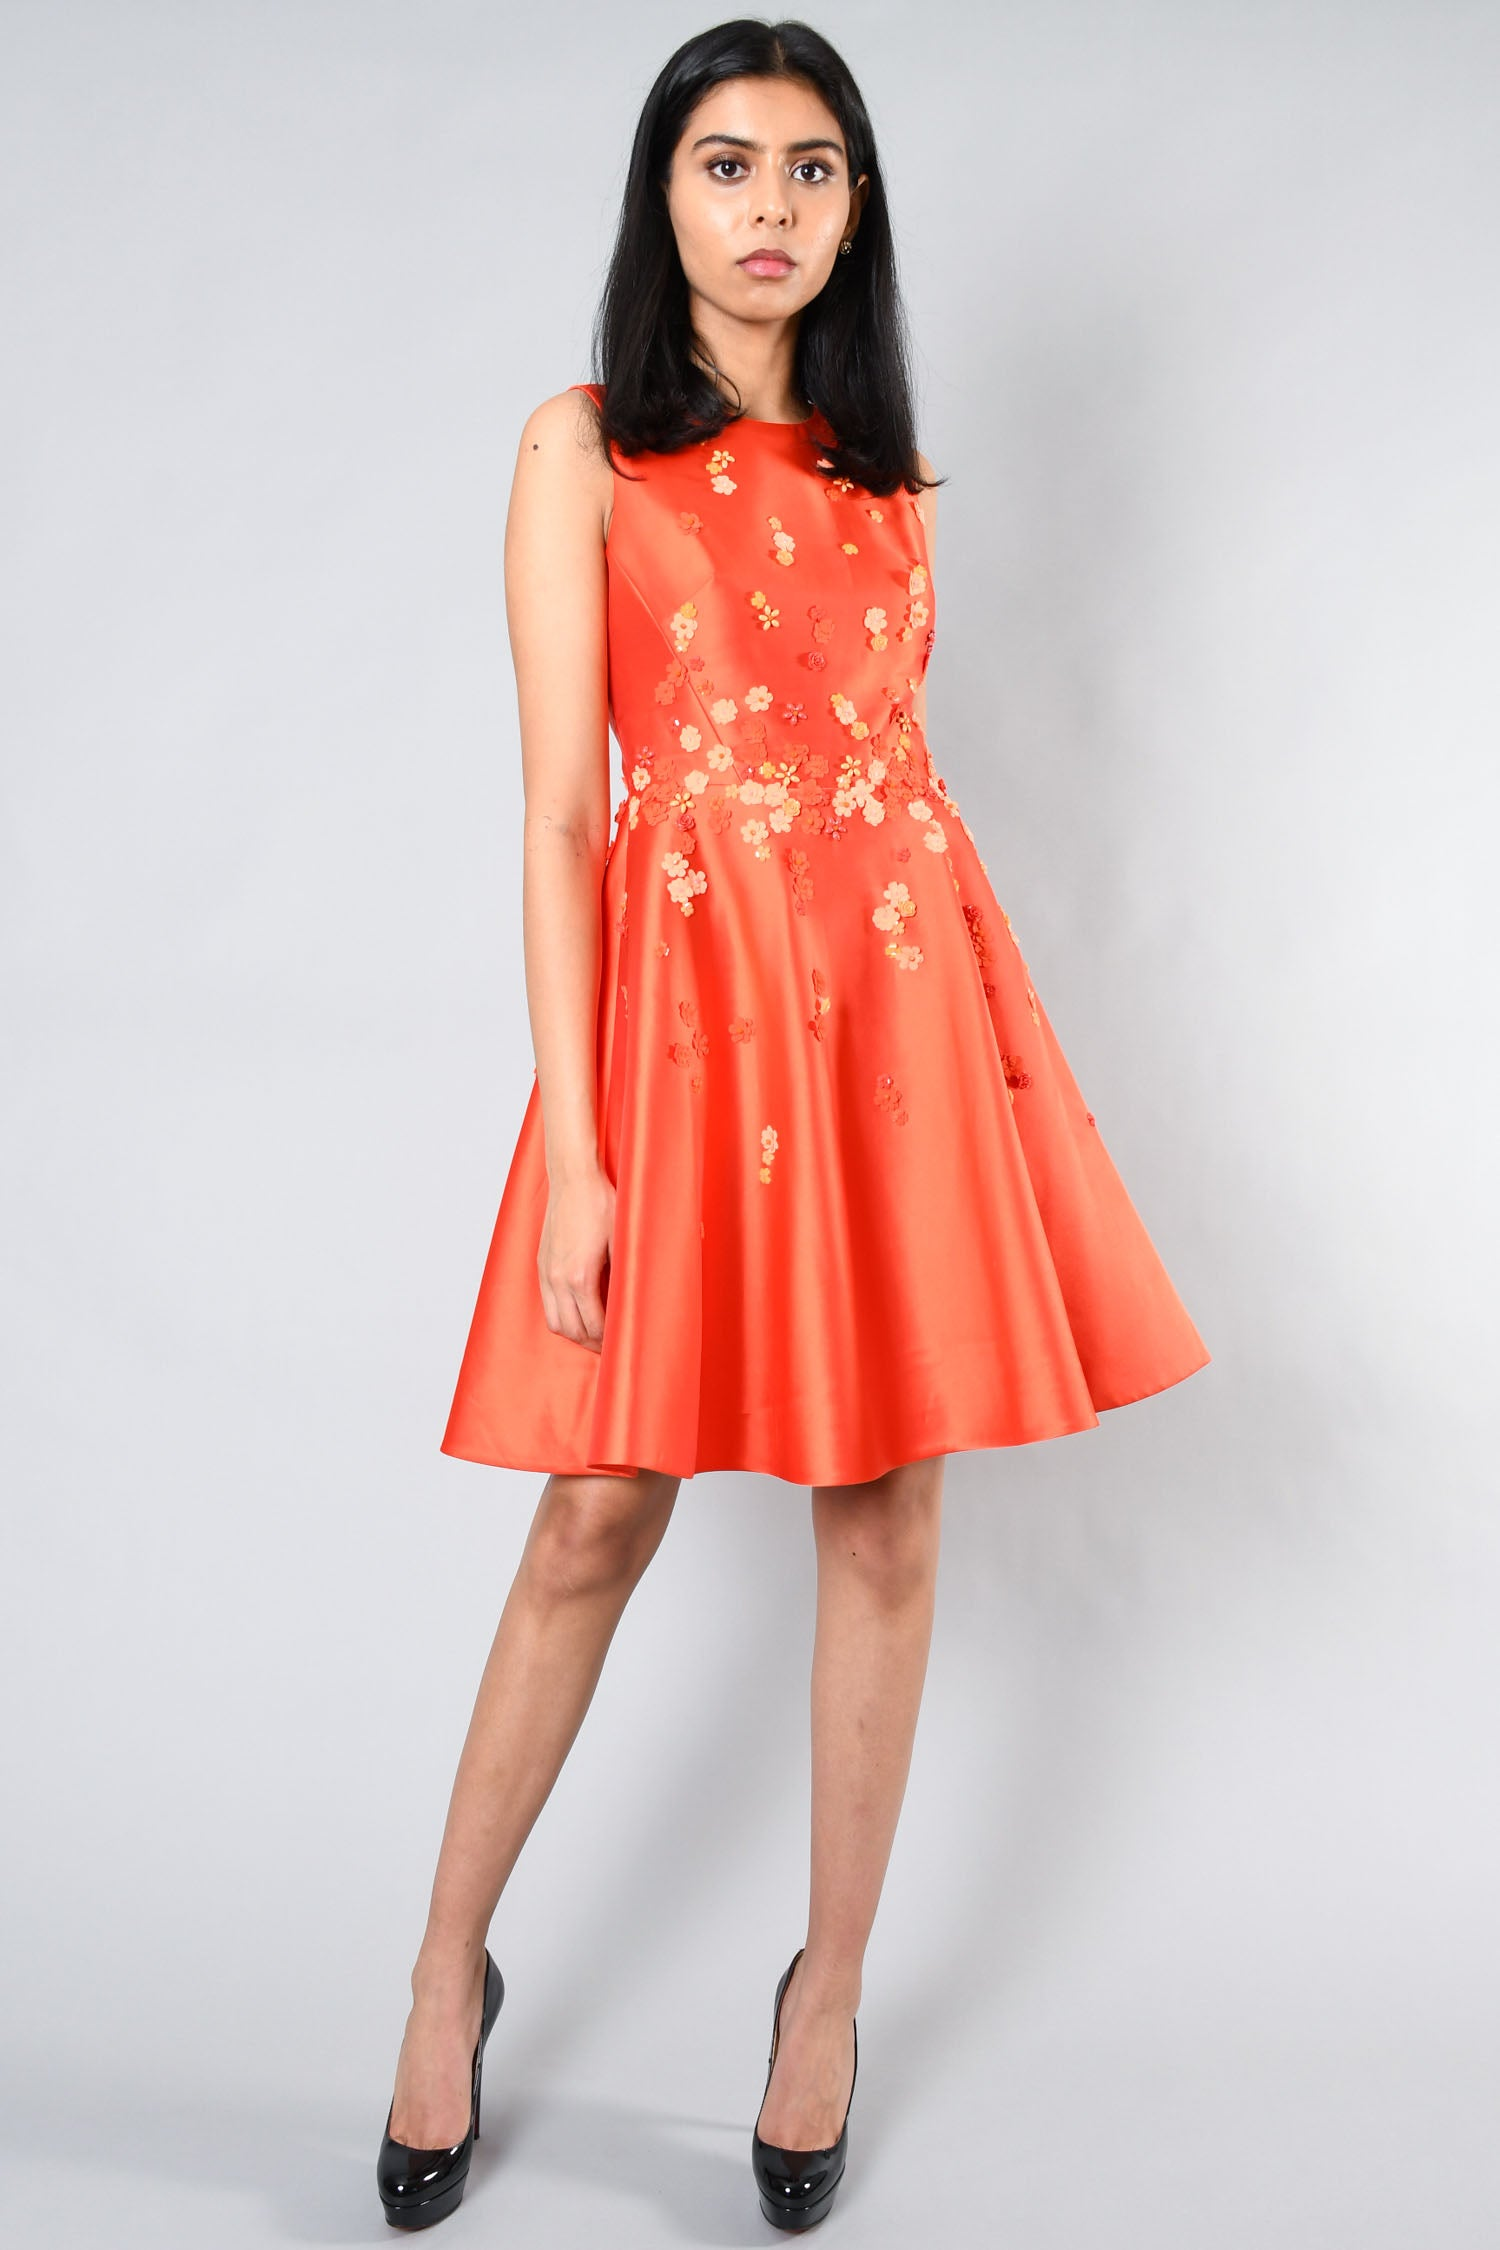 Karen Millen Orange Floral Beaded Dress Size 4 US